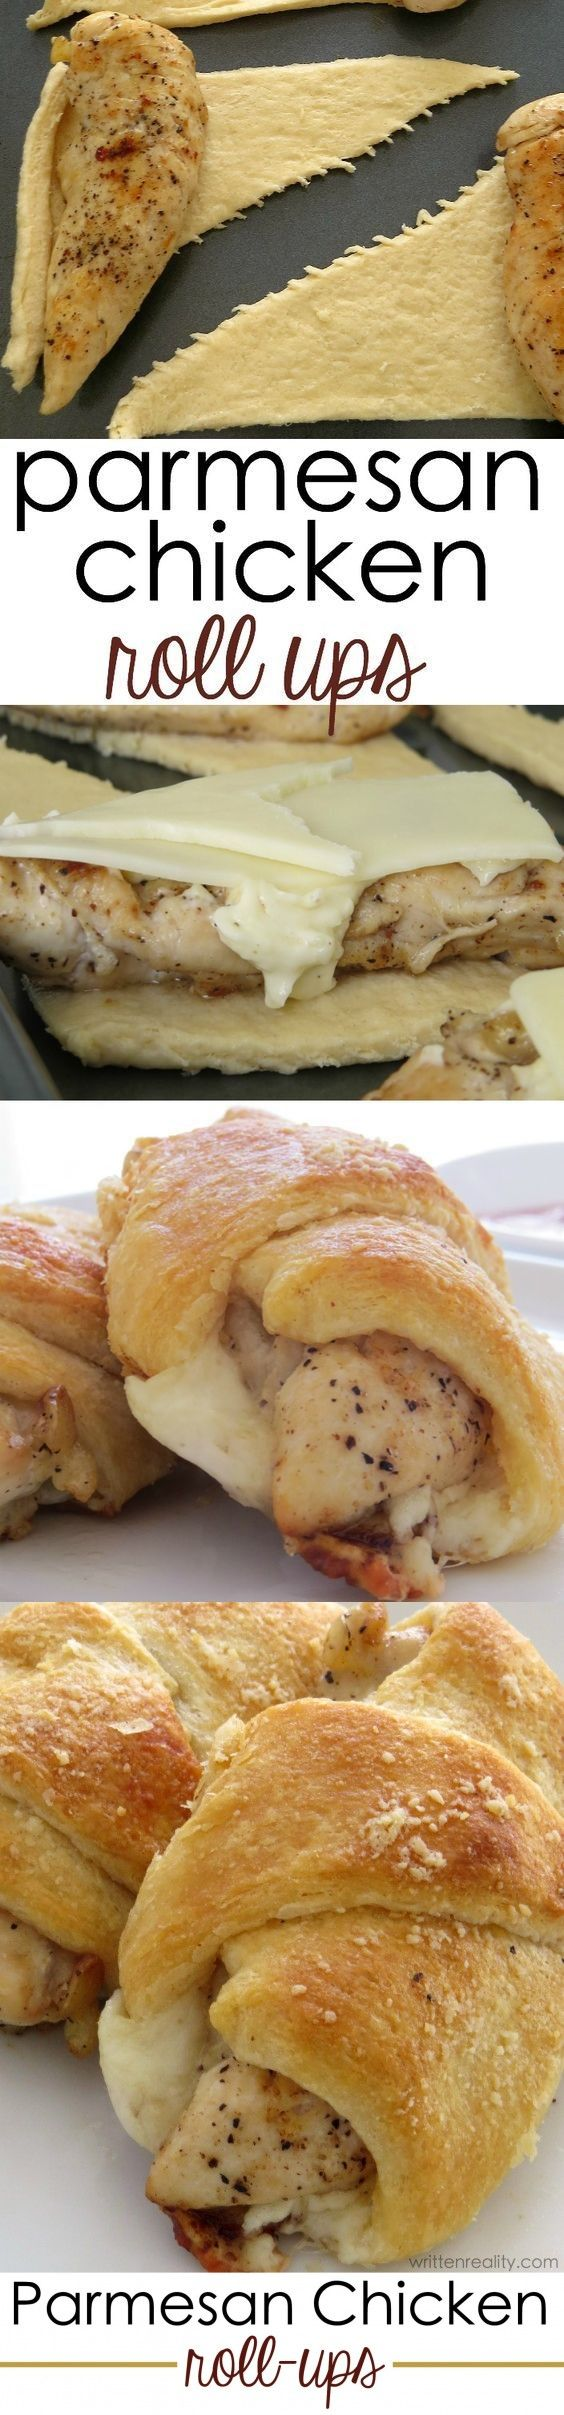 8 pieces Chicken tenderloins. 1 cup Marinara sauce. 1/2 cup Mayonnaise. 1 Salt and pepper. 1 can Crescent dinner rolls, refrigerated. 1/4 3 tablespoons of grated parmesan cheese. 3 tbsp Butter. 4 slices Deli-style mozzarella cheese.